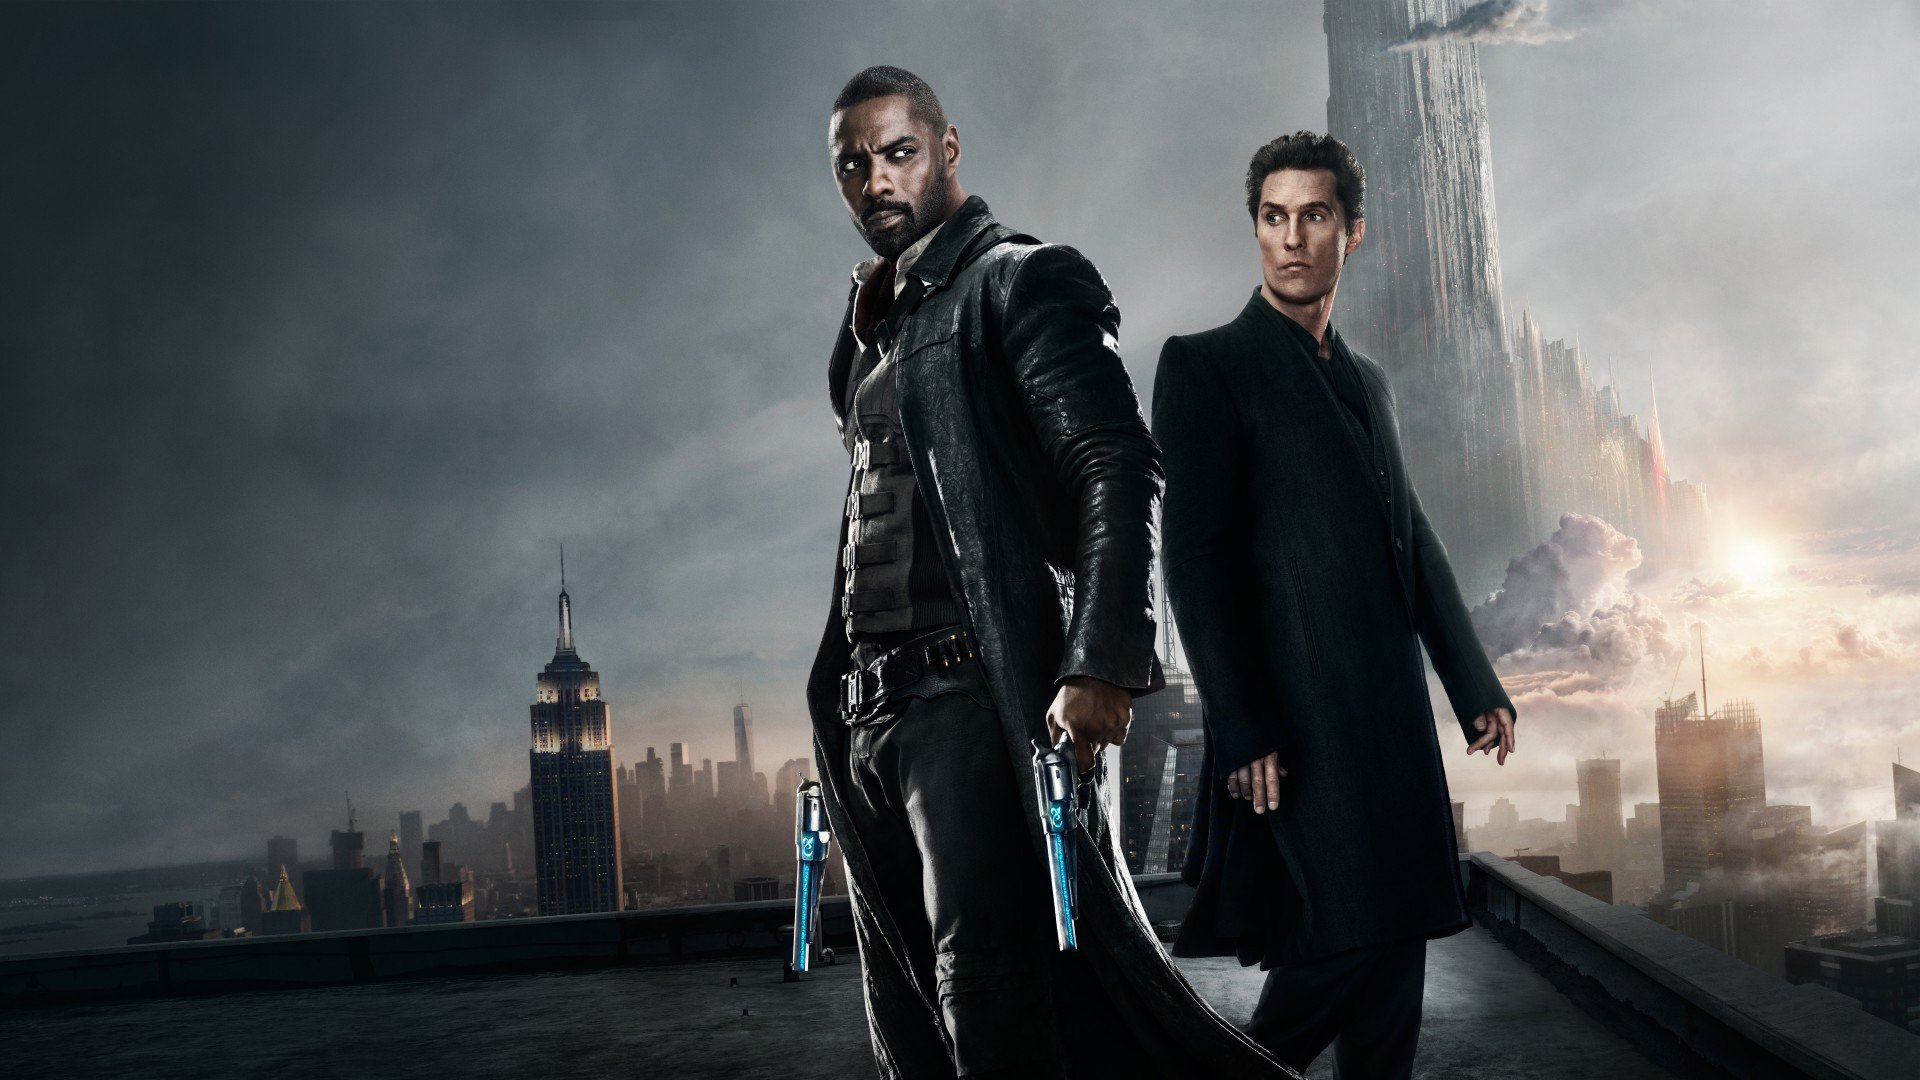 A Dark Tower game would probably perform well given the continued interest in the series as emphasized by recent film and TV adaptations.